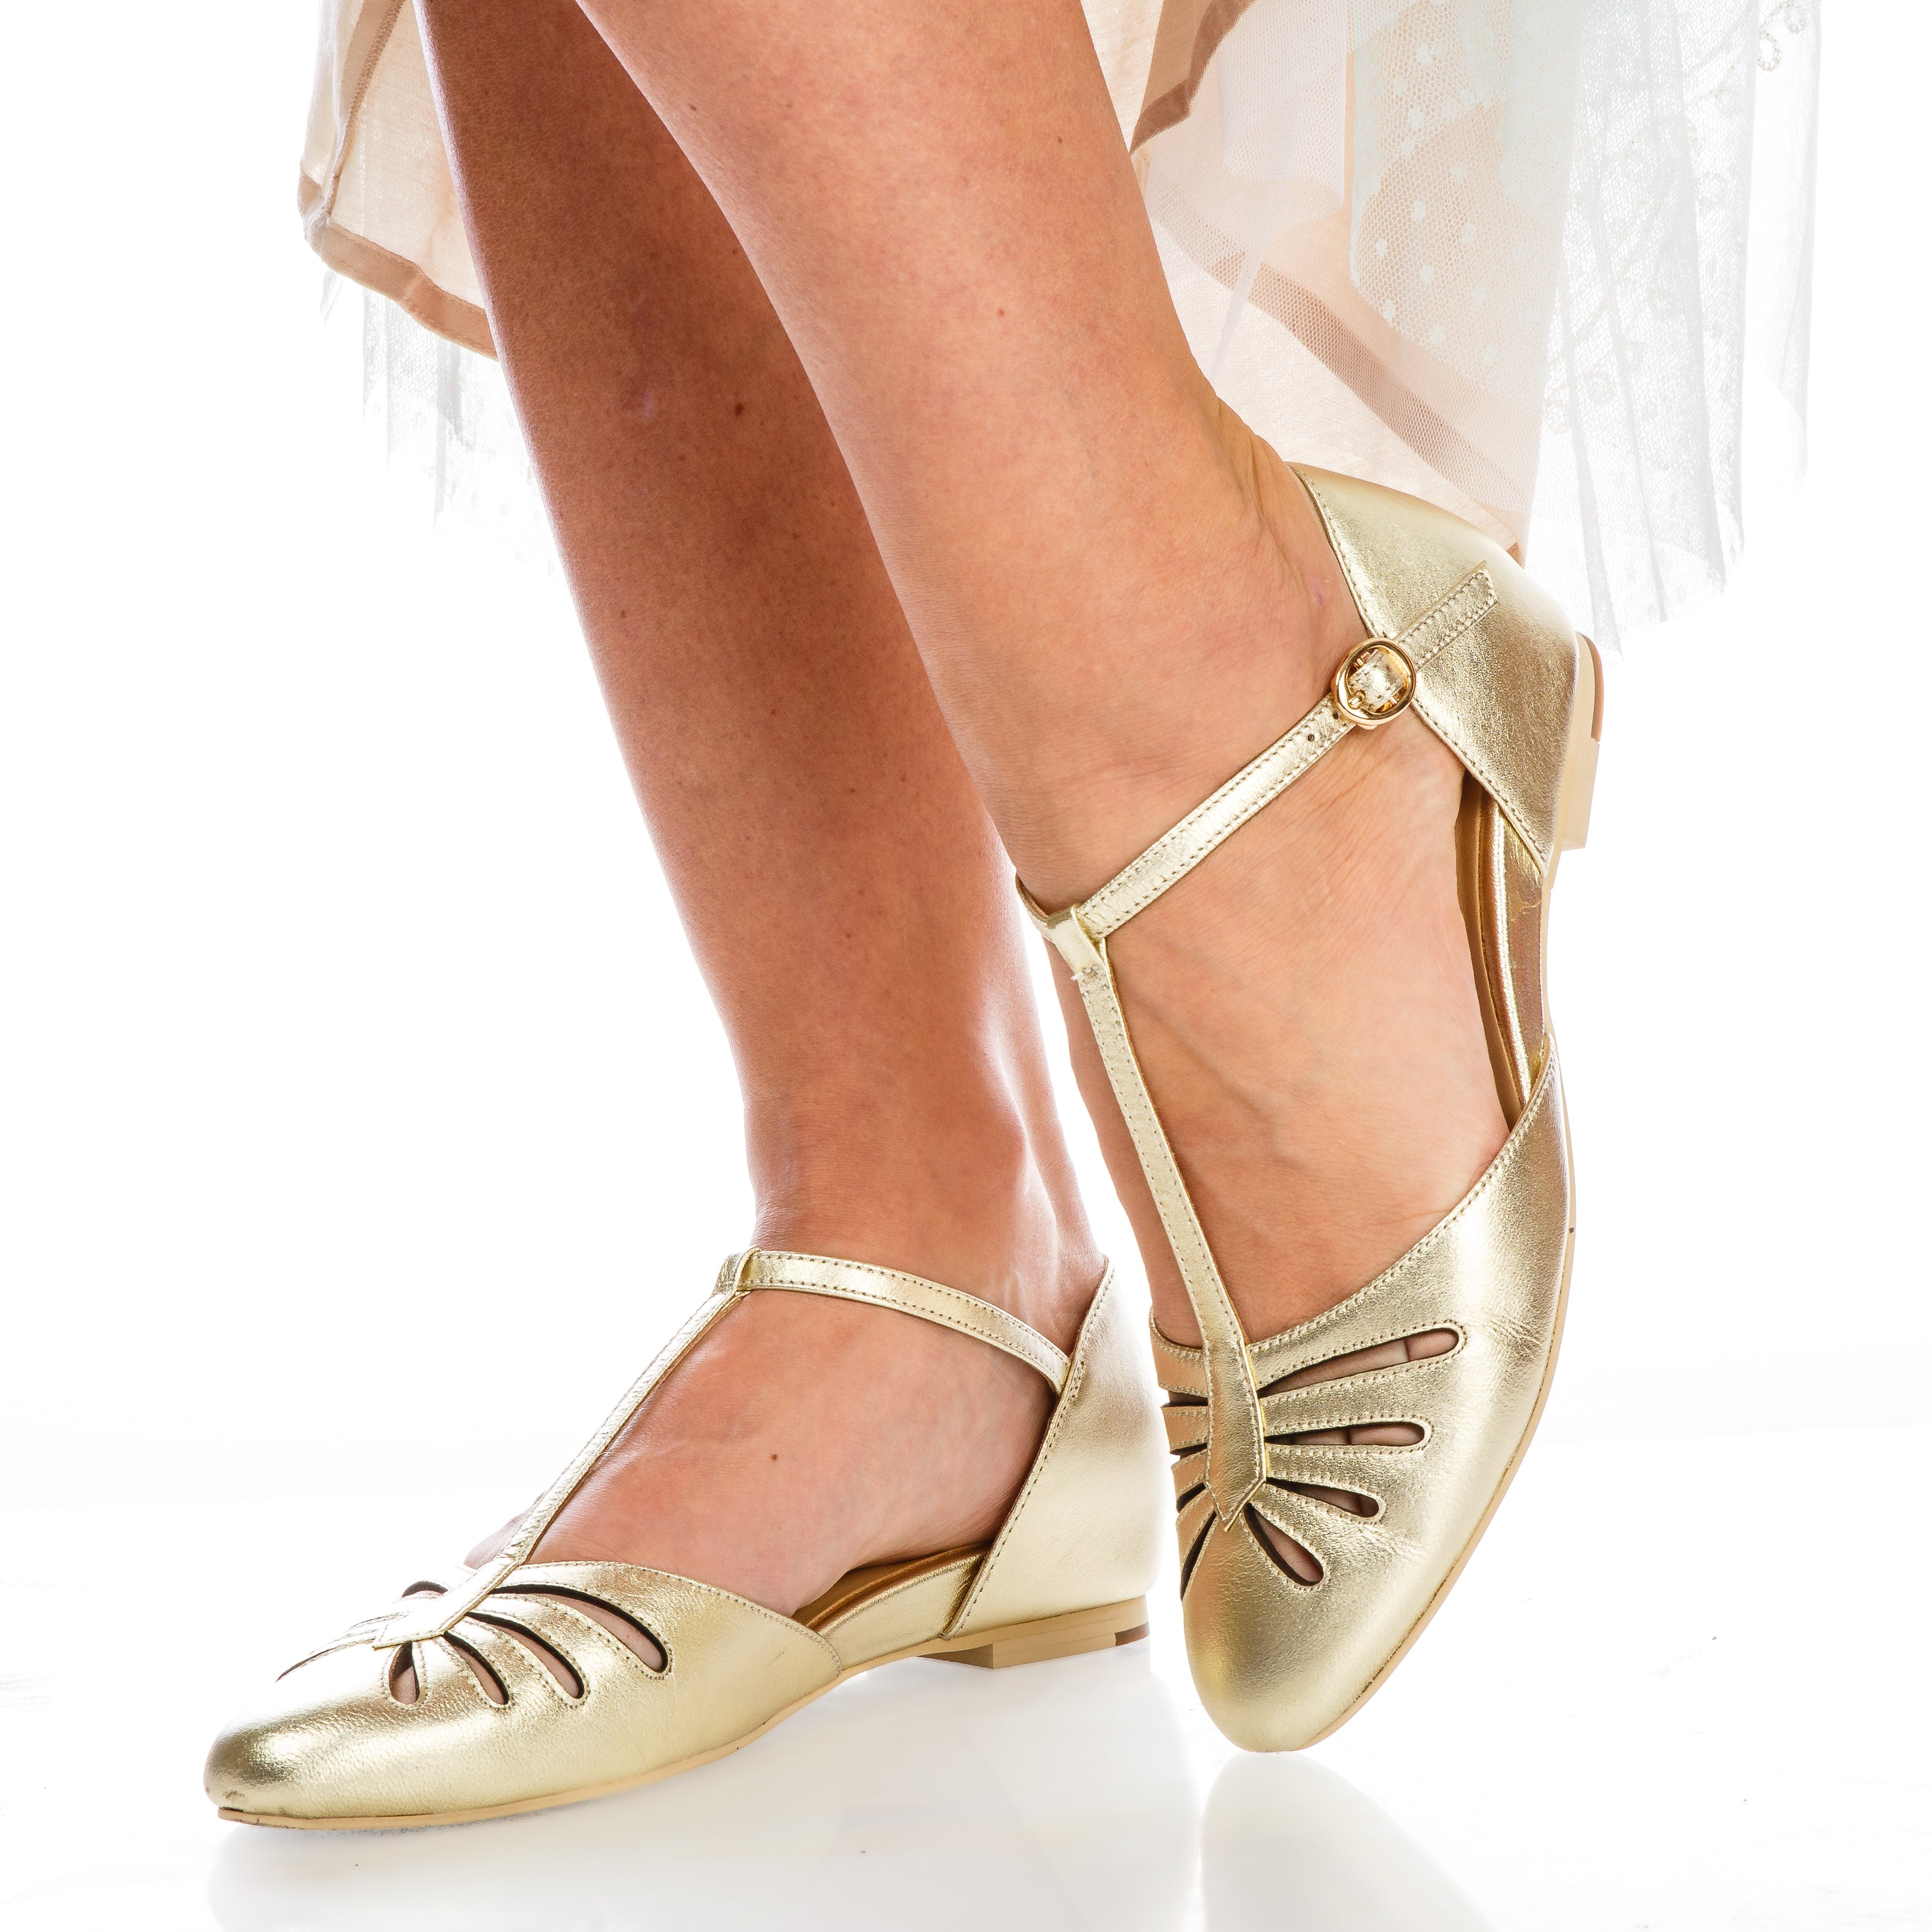 1930s Shoes – Art Deco Shoes, Heels, Boots, Sandals Singapore 1920s Style Flats in Gold $165.00 AT vintagedancer.com